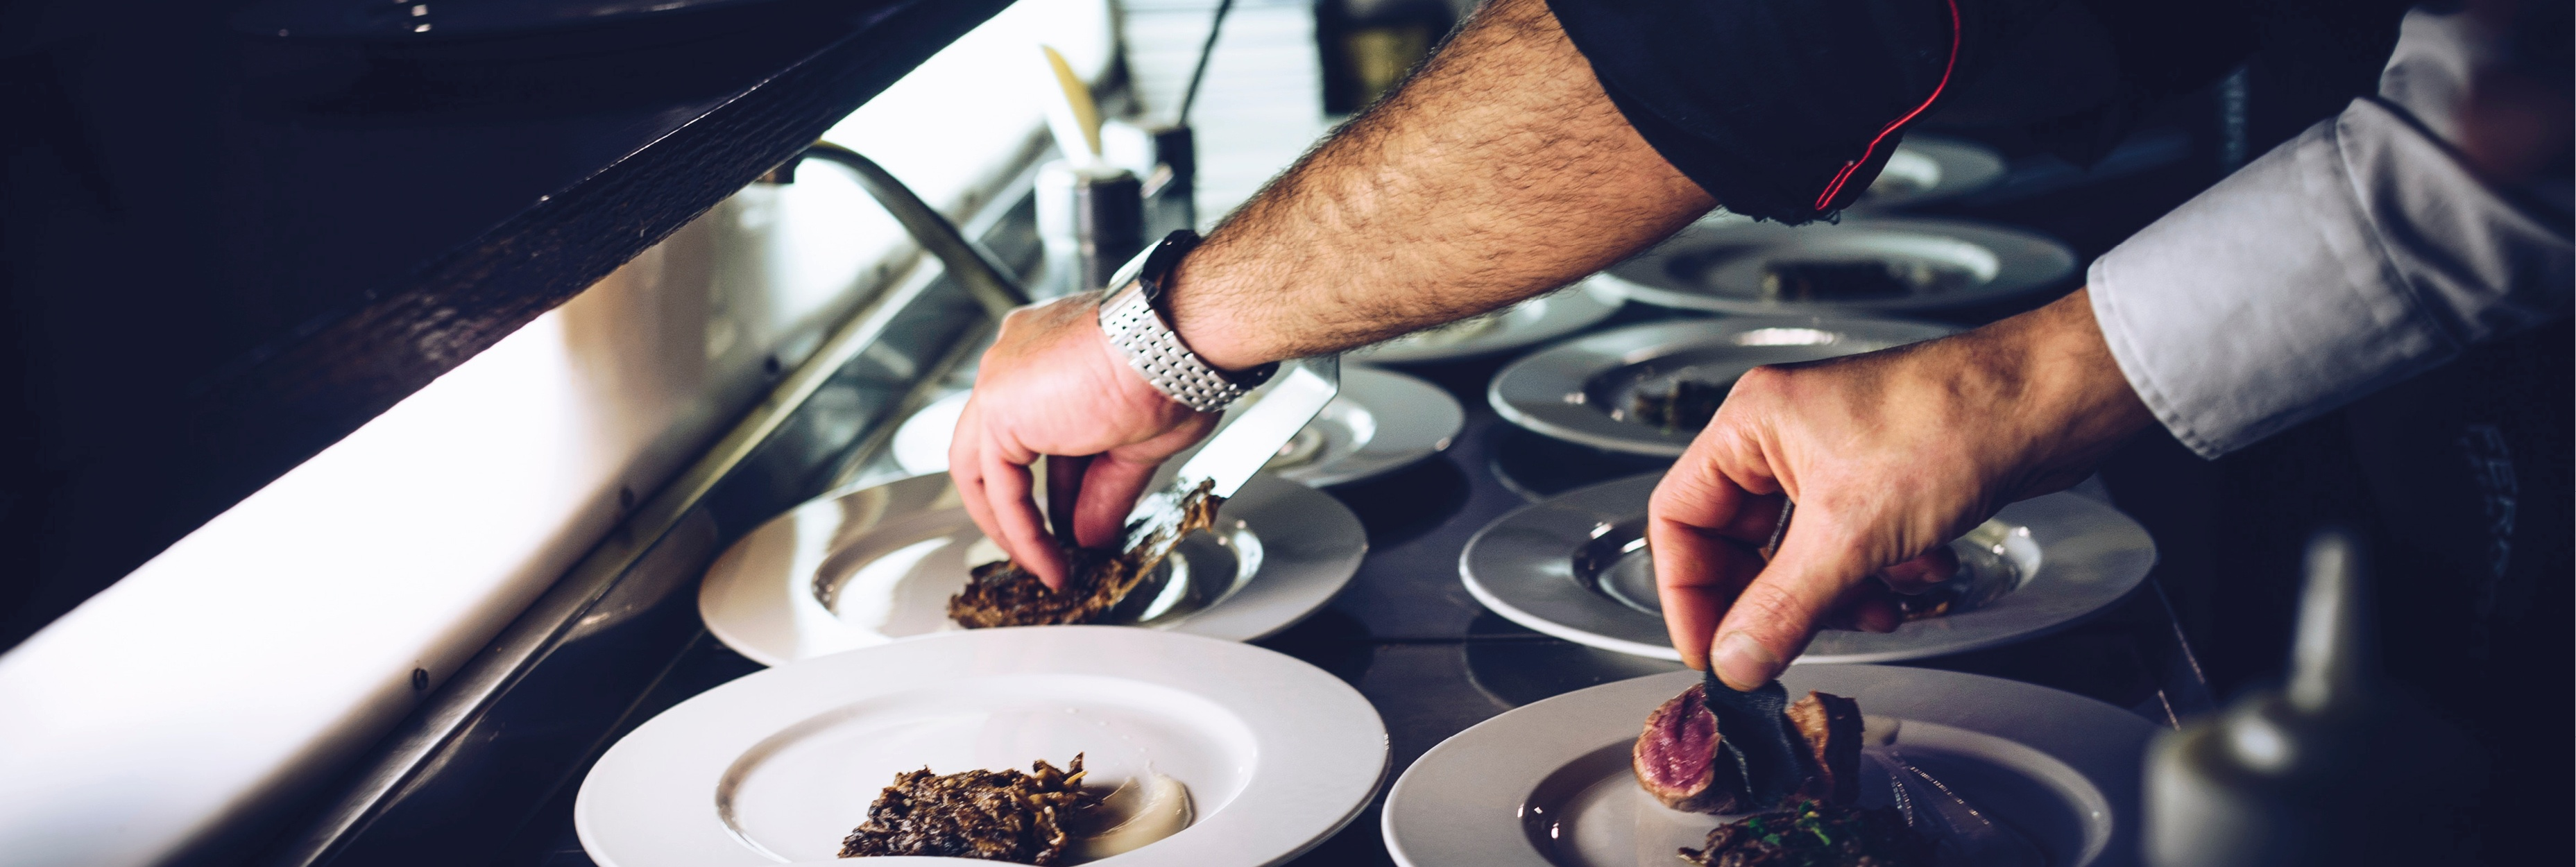 3 key trends for contract caterers in 2017